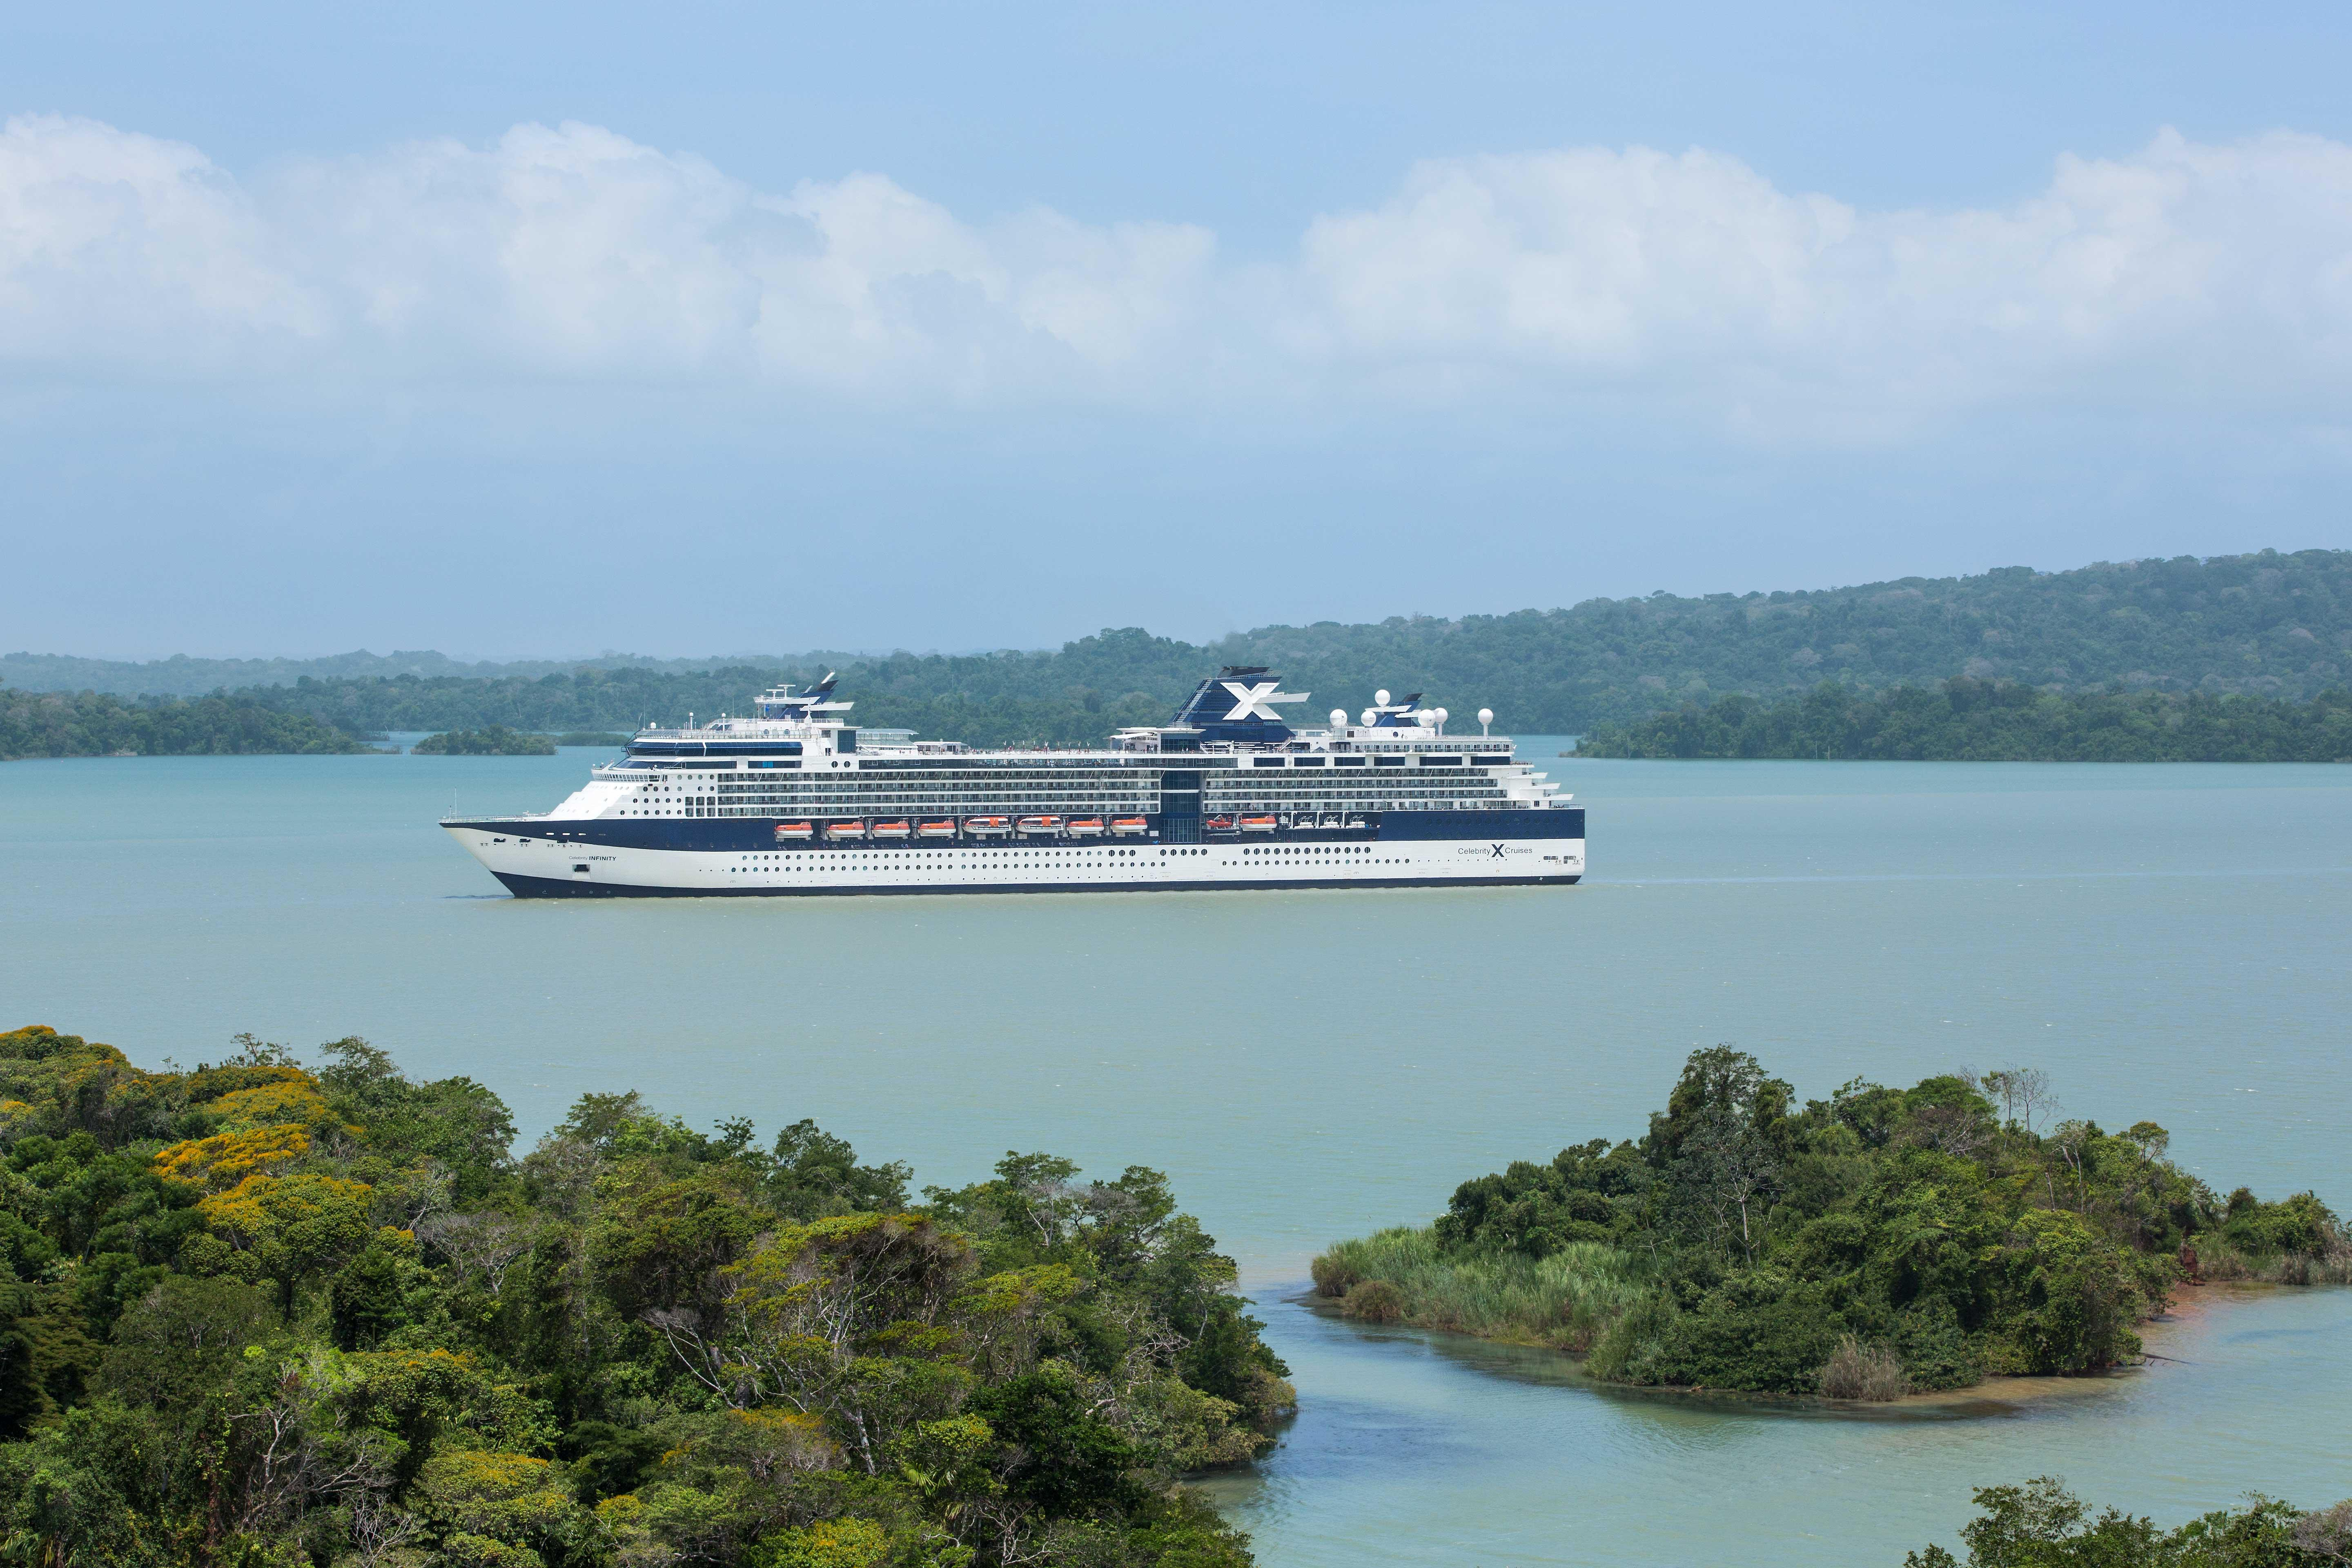 Traverse tropical waterways with stunning views on Central America cruises